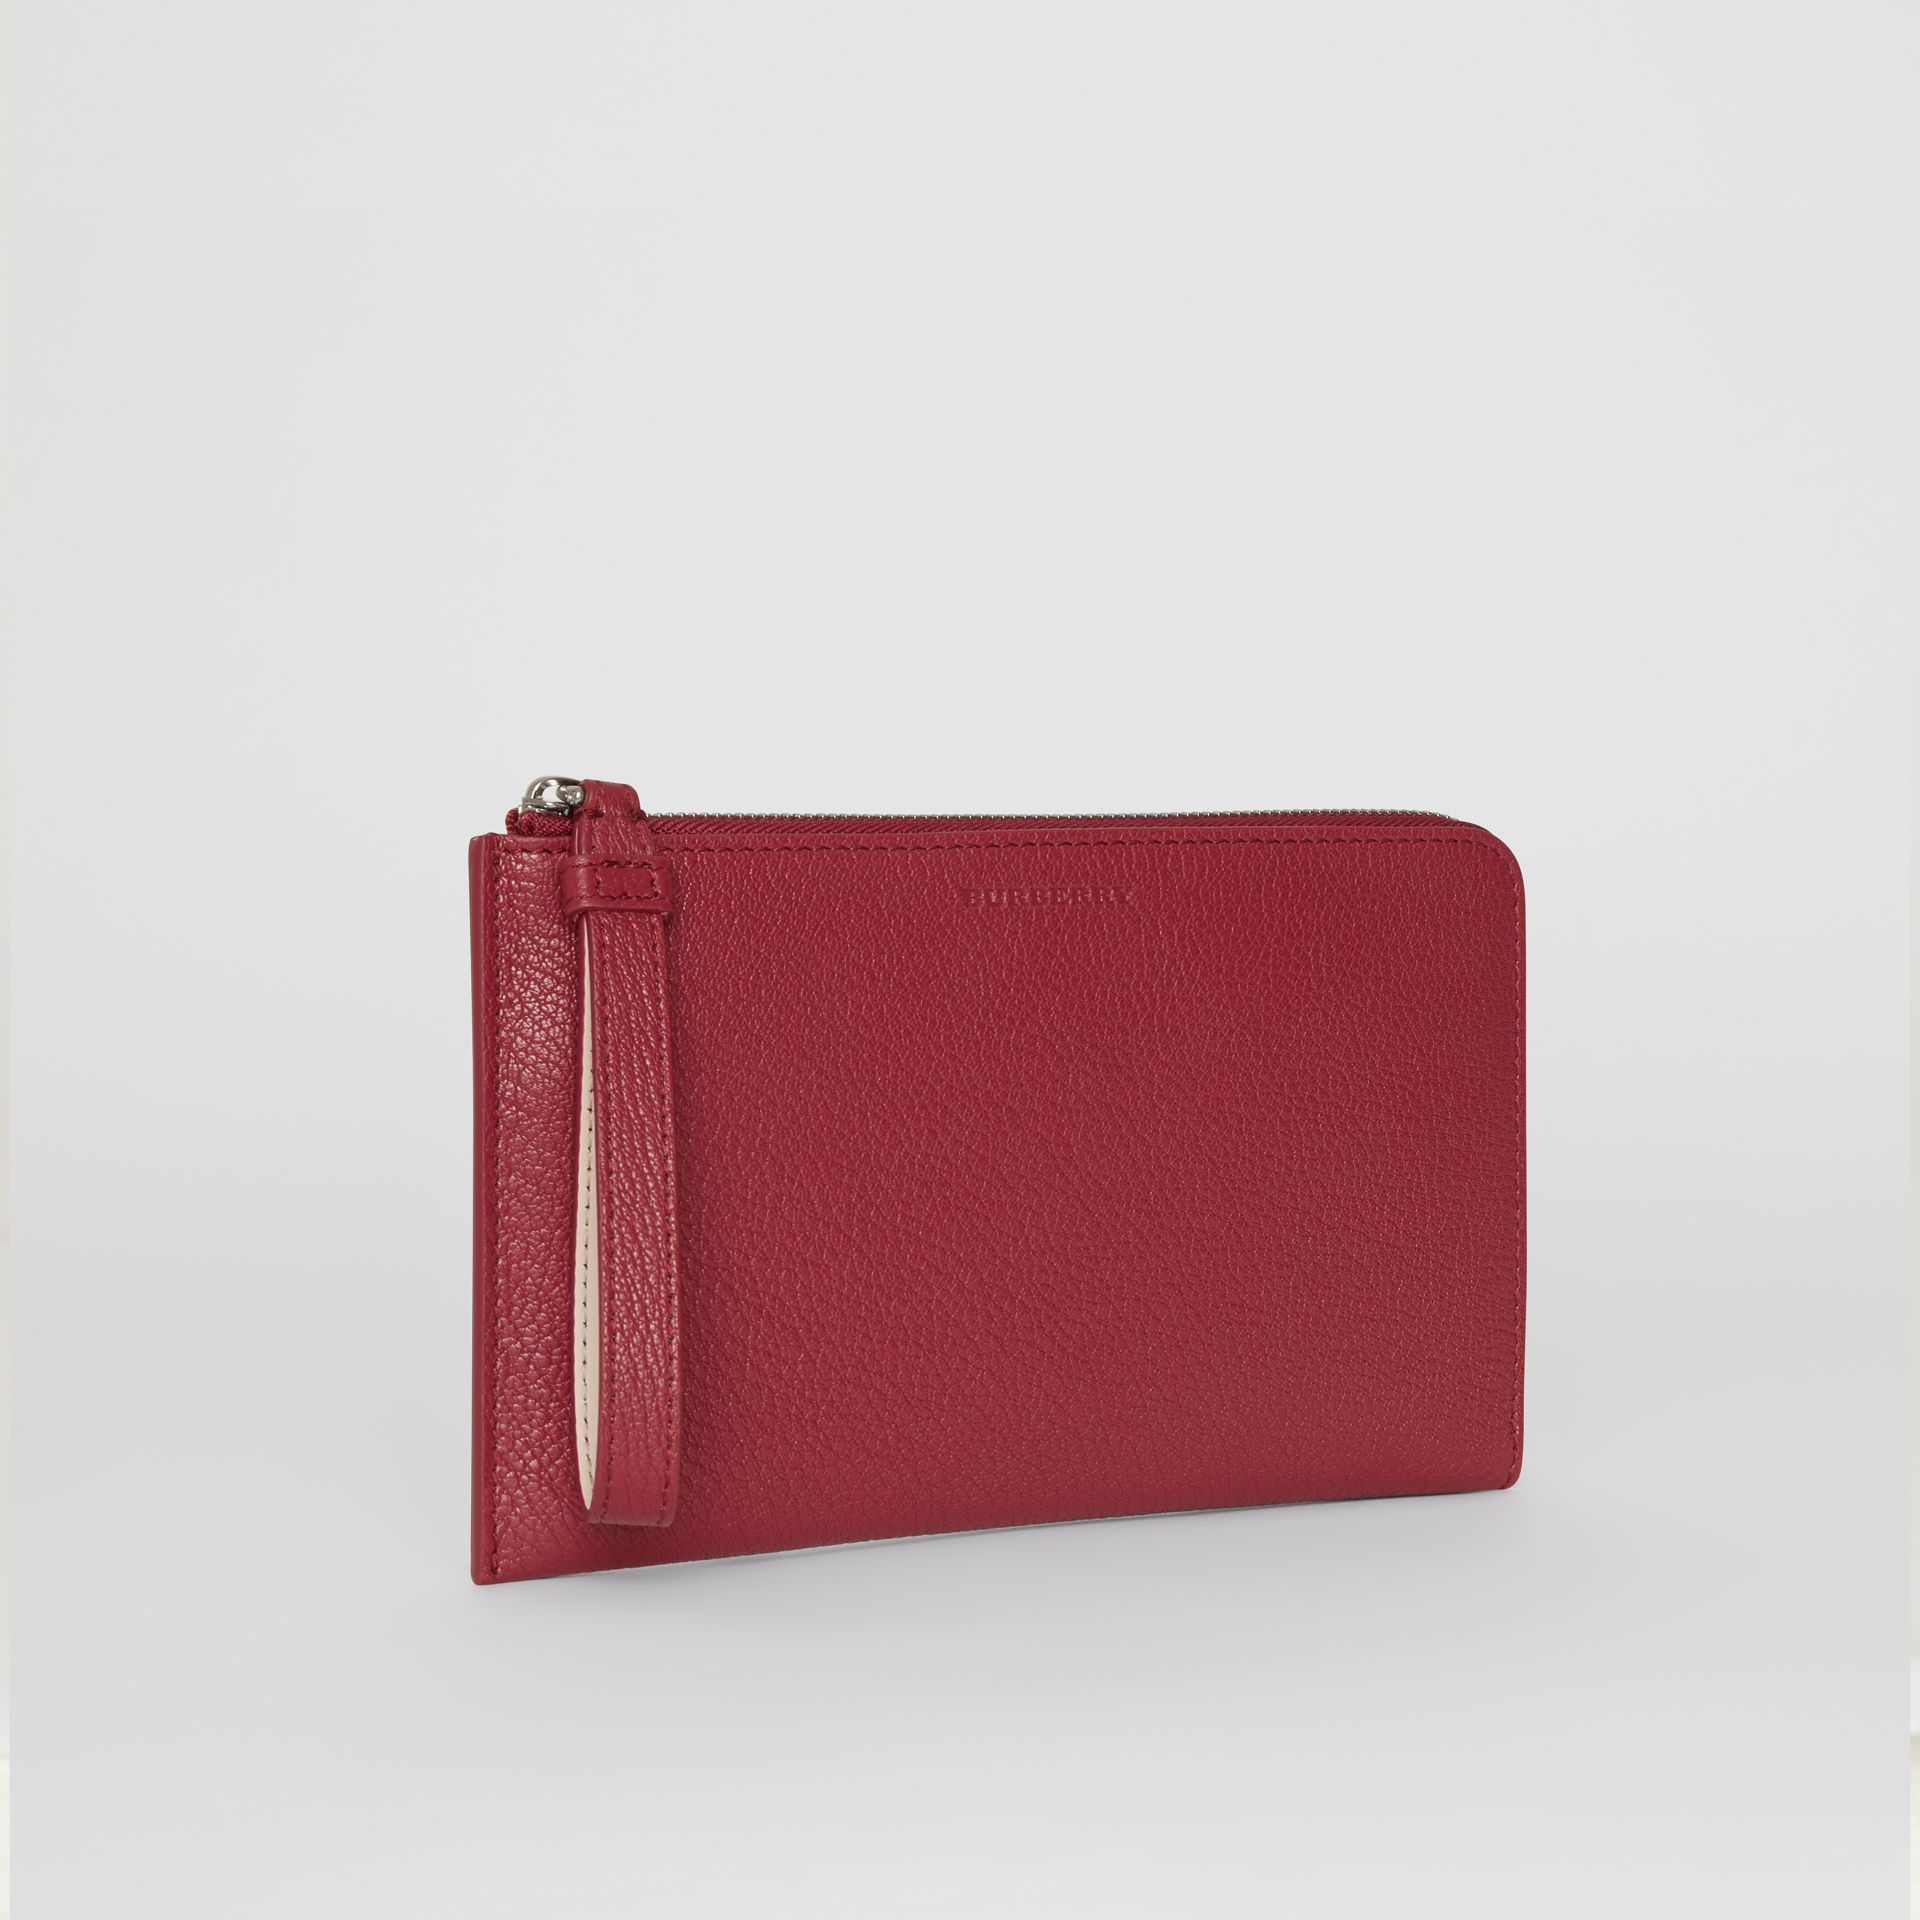 Two-tone Grainy Leather Travel Wallet in Crimson - Women | Burberry - gallery image 6